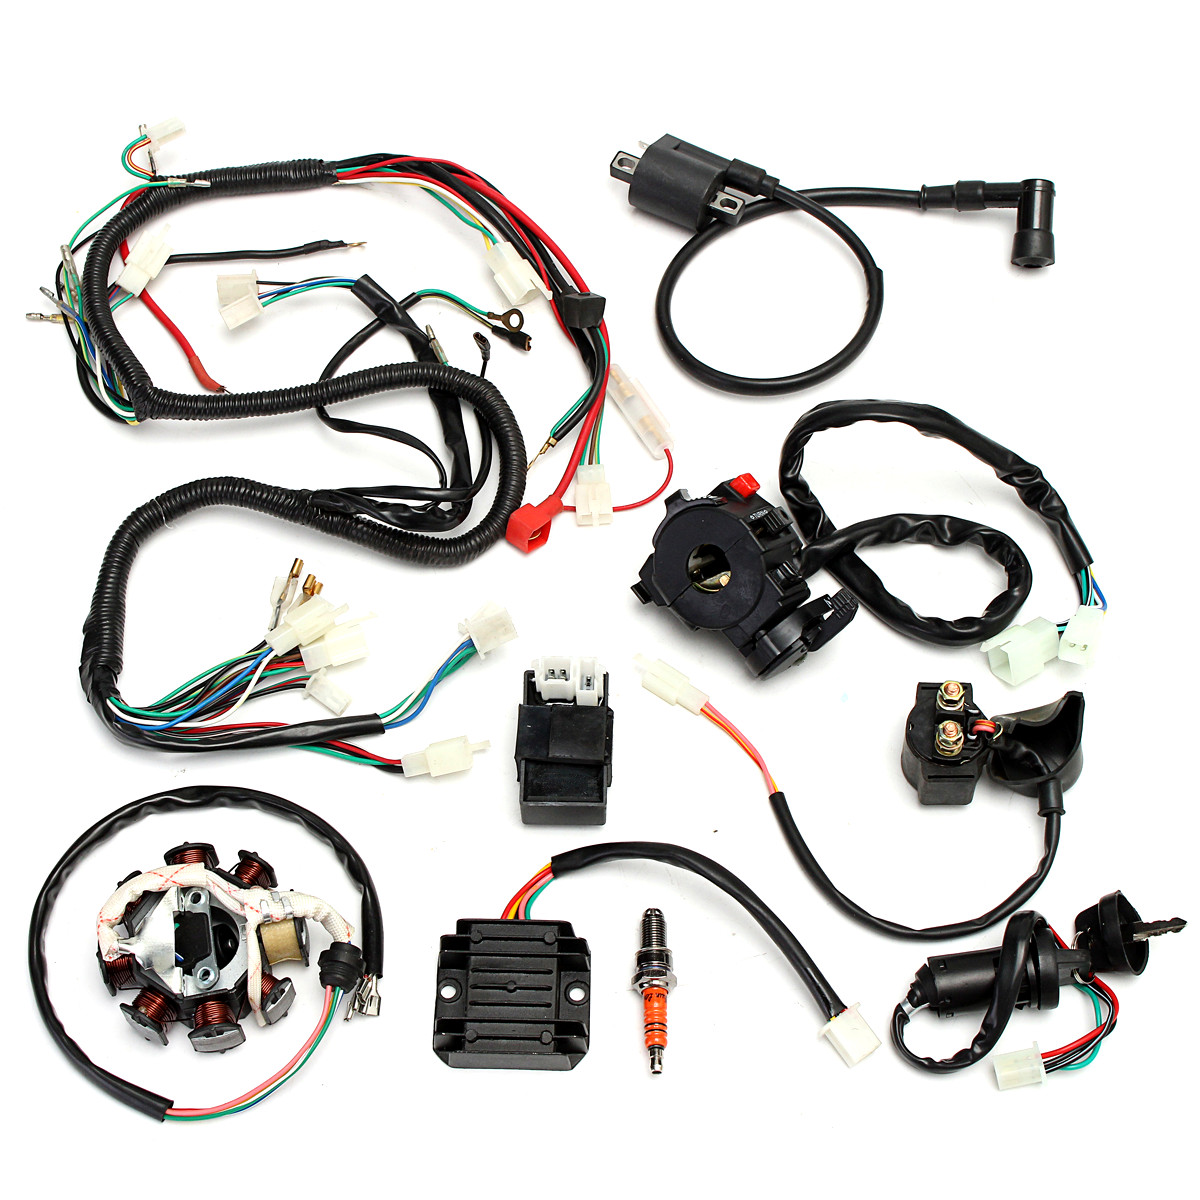 complete electrics wiring harness for chinese dirt bike atv quad 150 250 300cc Wiring Harness 93A050059